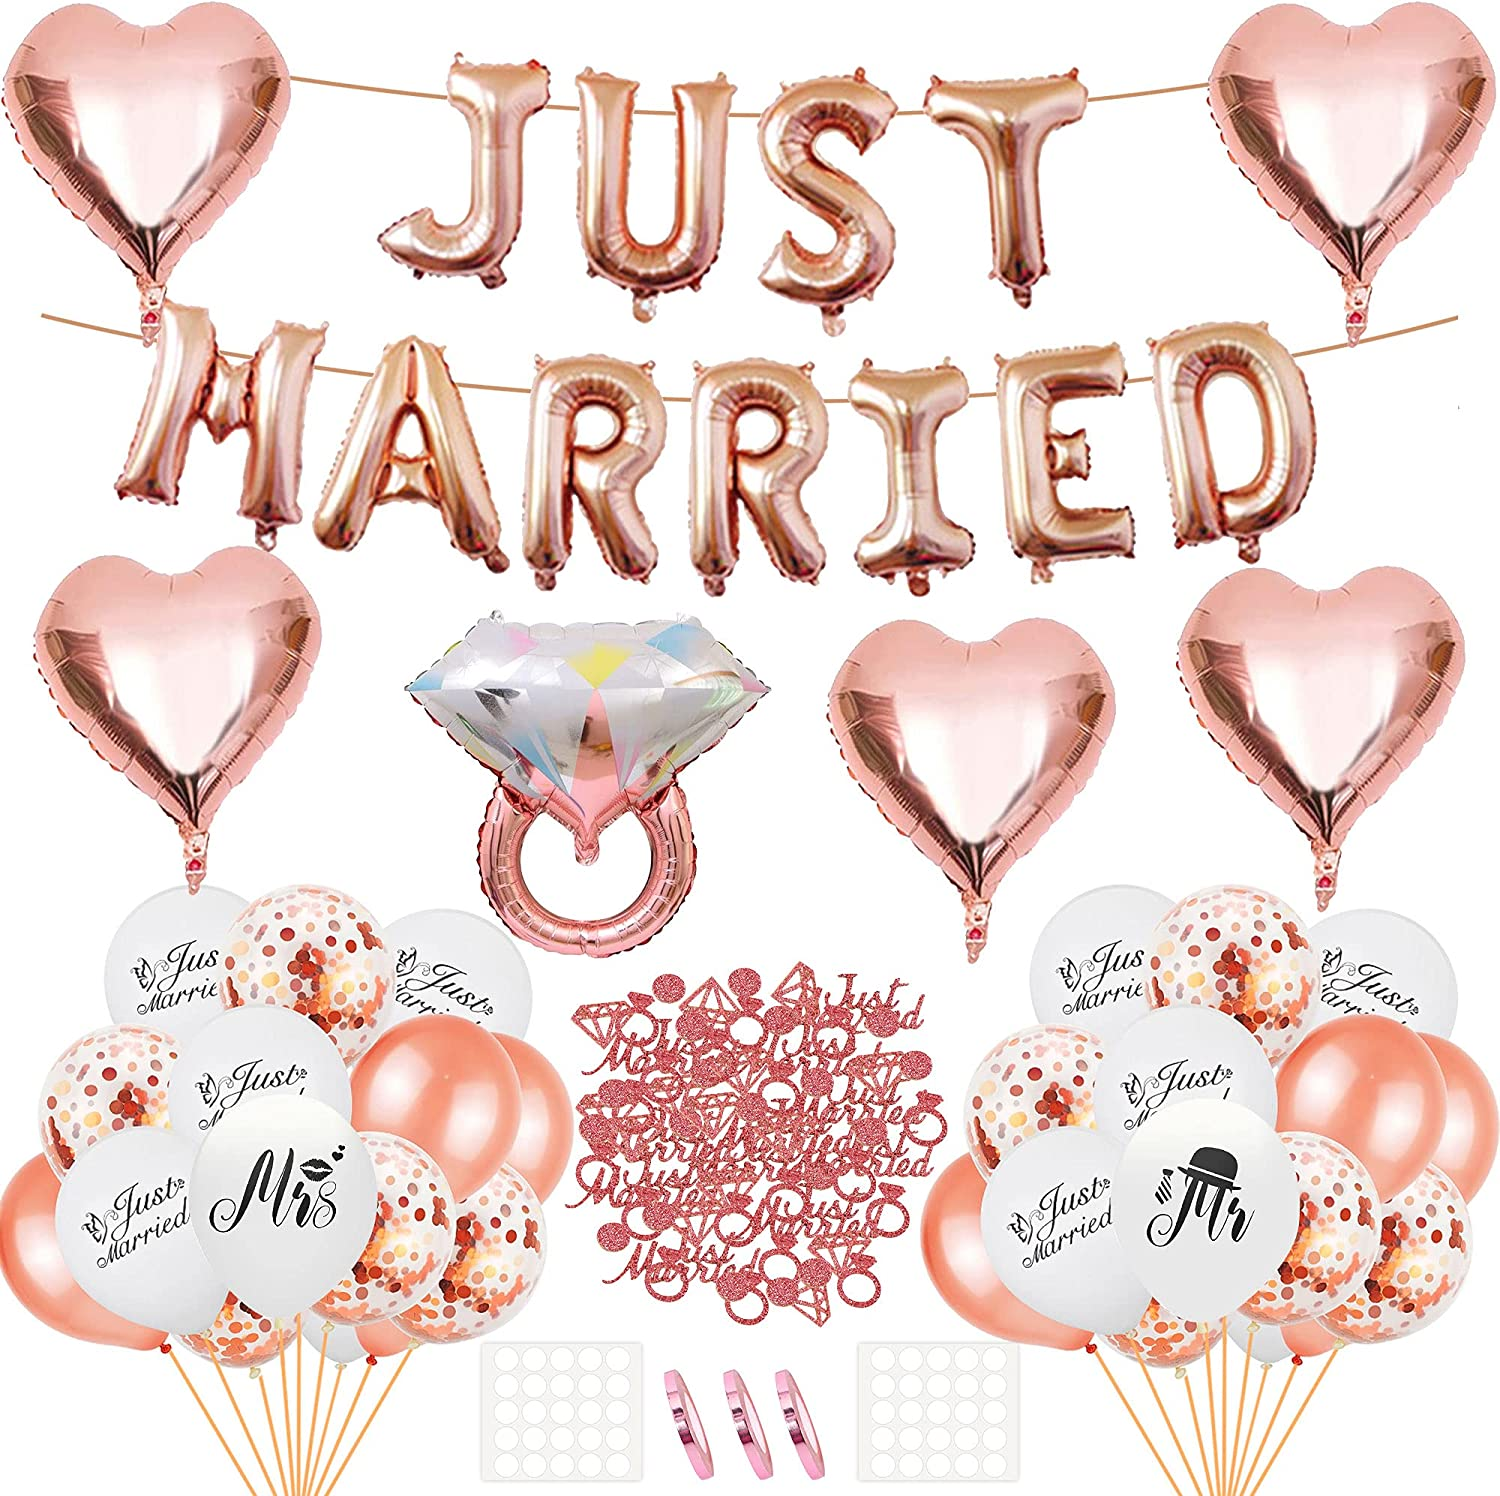 Just Married Wedding Decorations Garland Banner with Aluminum foil balloons, Latex Balloons, Party Sequins Sprinkles Confetti for Weddings, Engagement, Anniversary Party, Bridal Showers